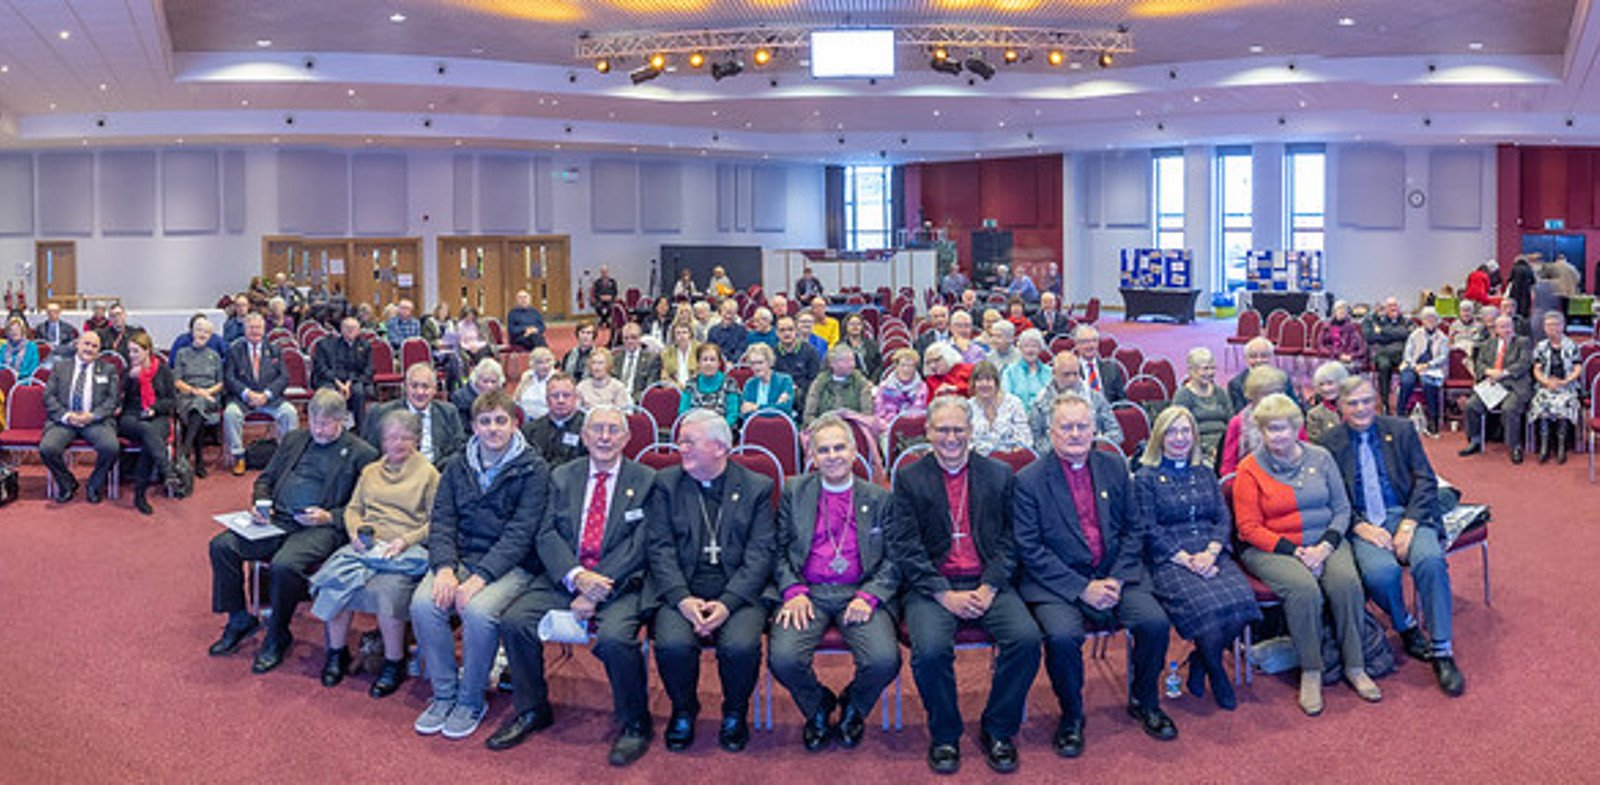 Friends of the Holy Land celebrated in Coventry